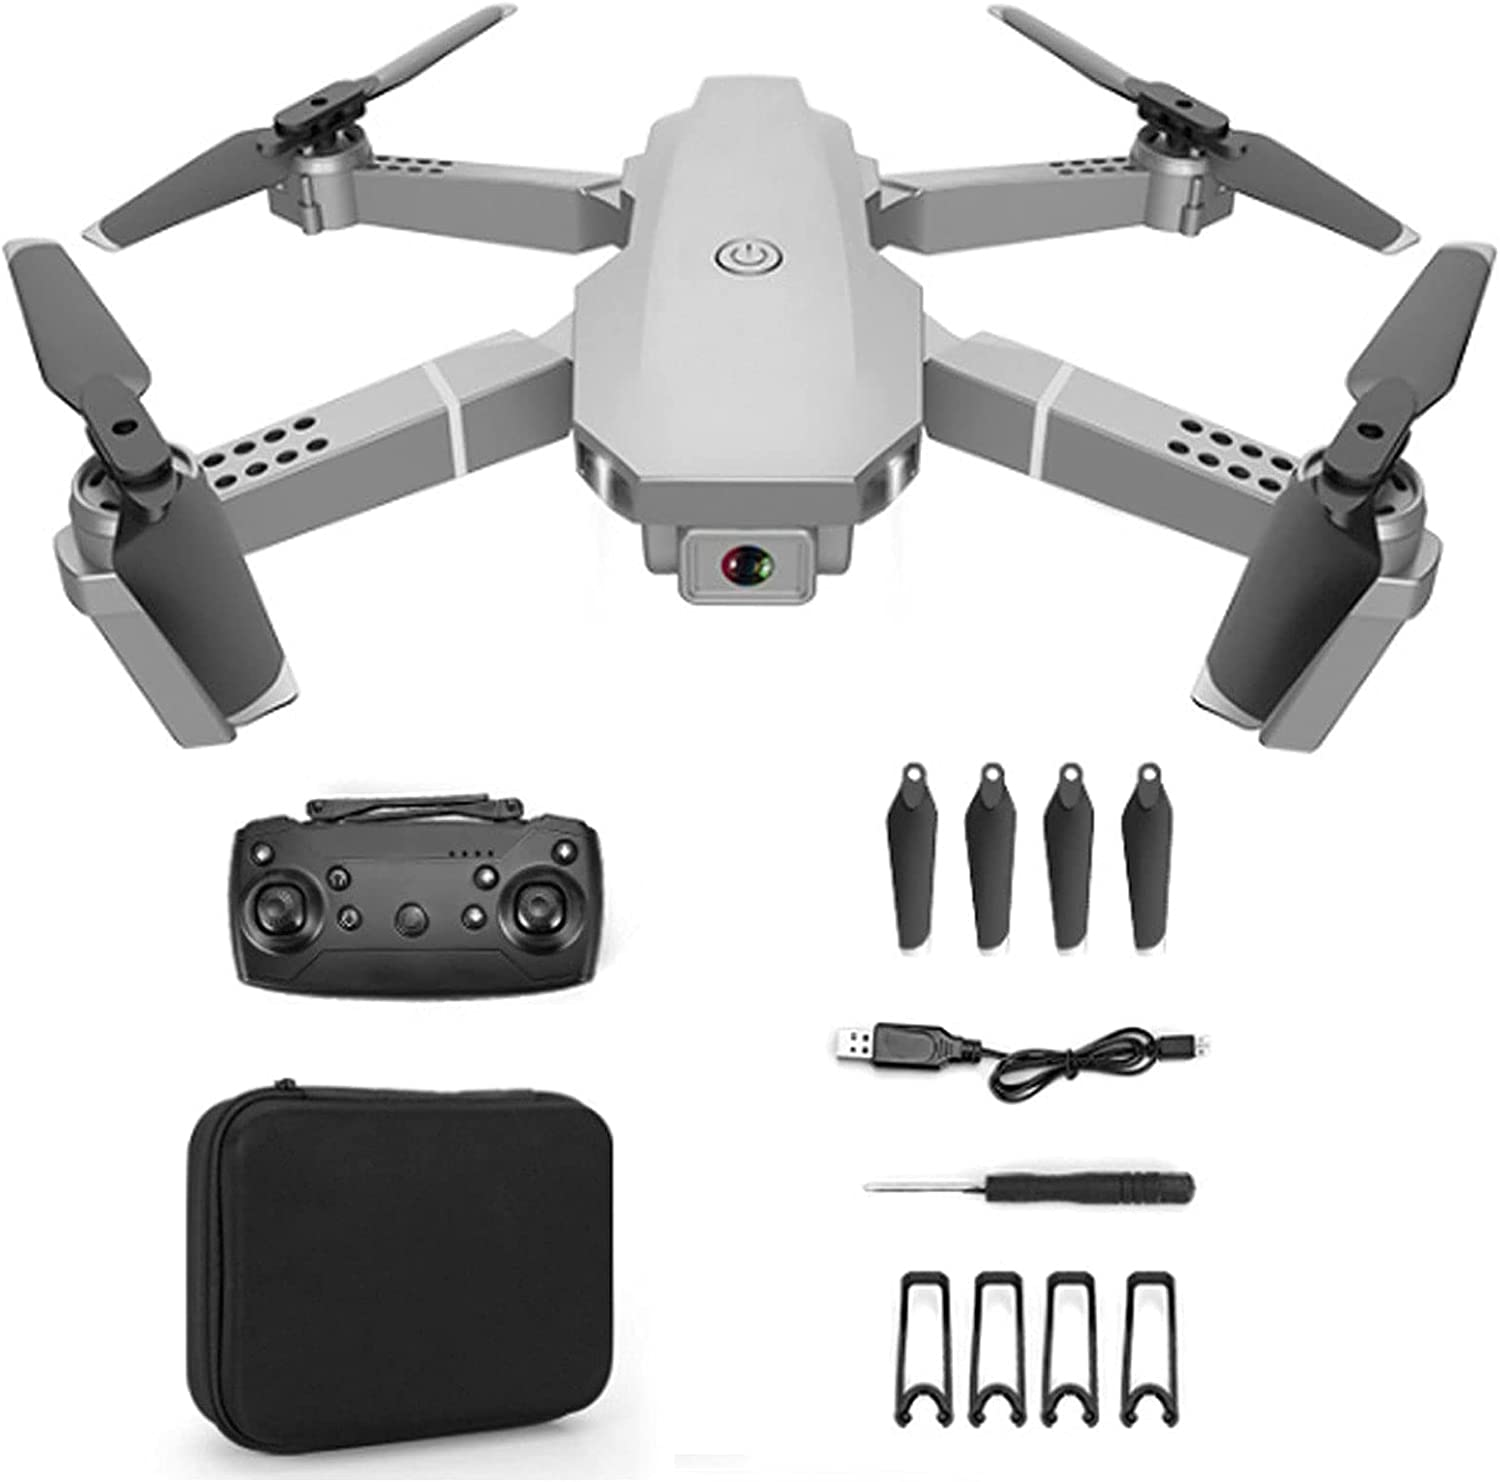 JEGE GPS Drone with 4K HD Camera Some reservation Au WiFi Quadcopter Phoenix Mall FPV Video RC